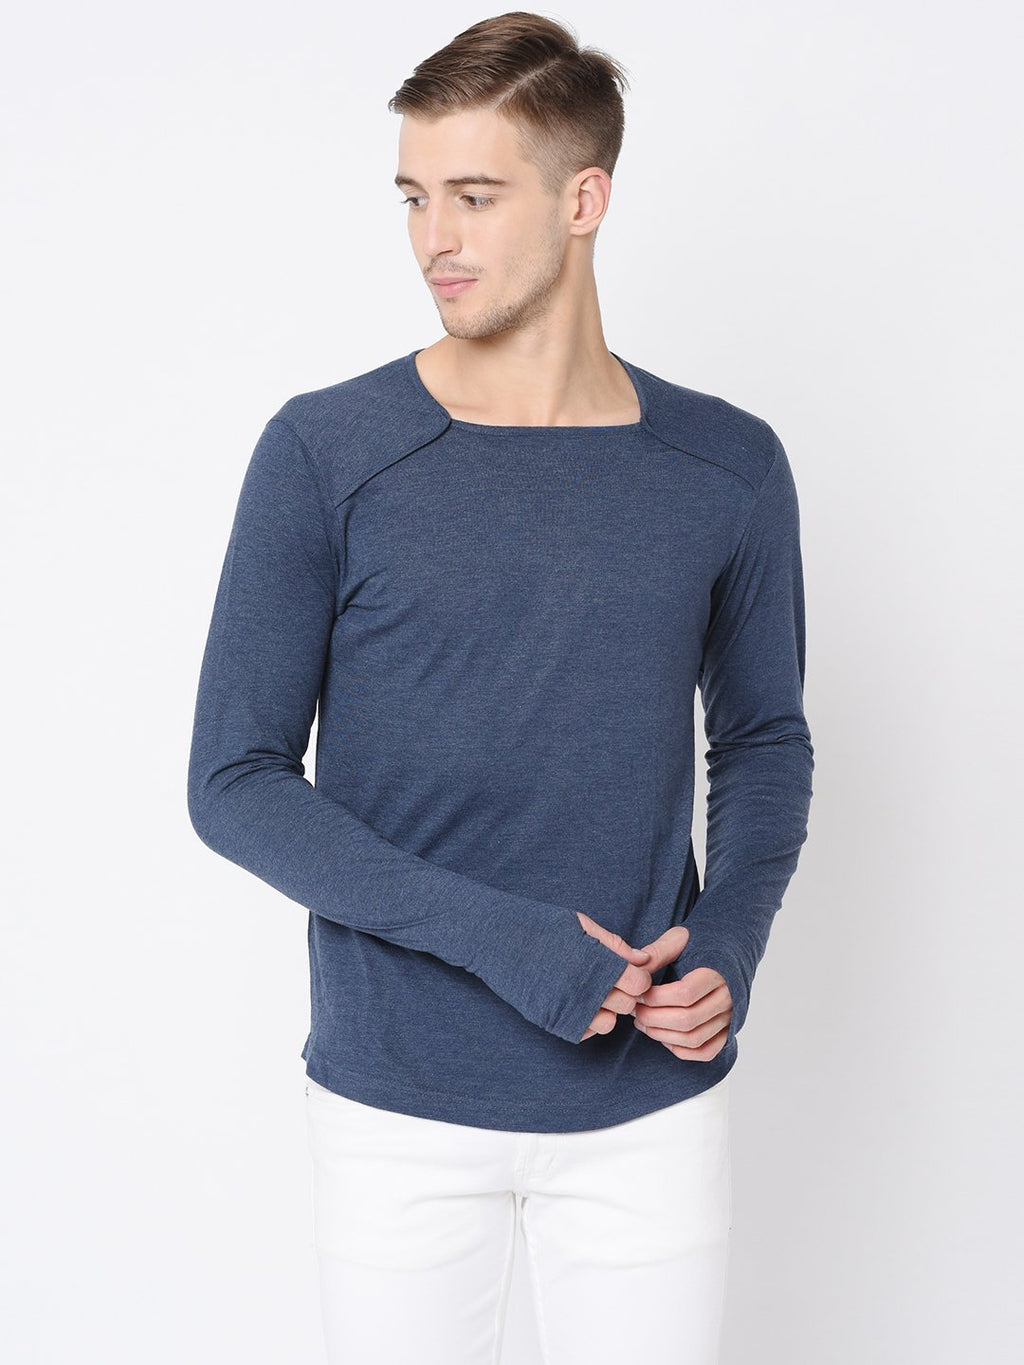 Rigo Blue Melange Square Neck Henley Tshirt For Men